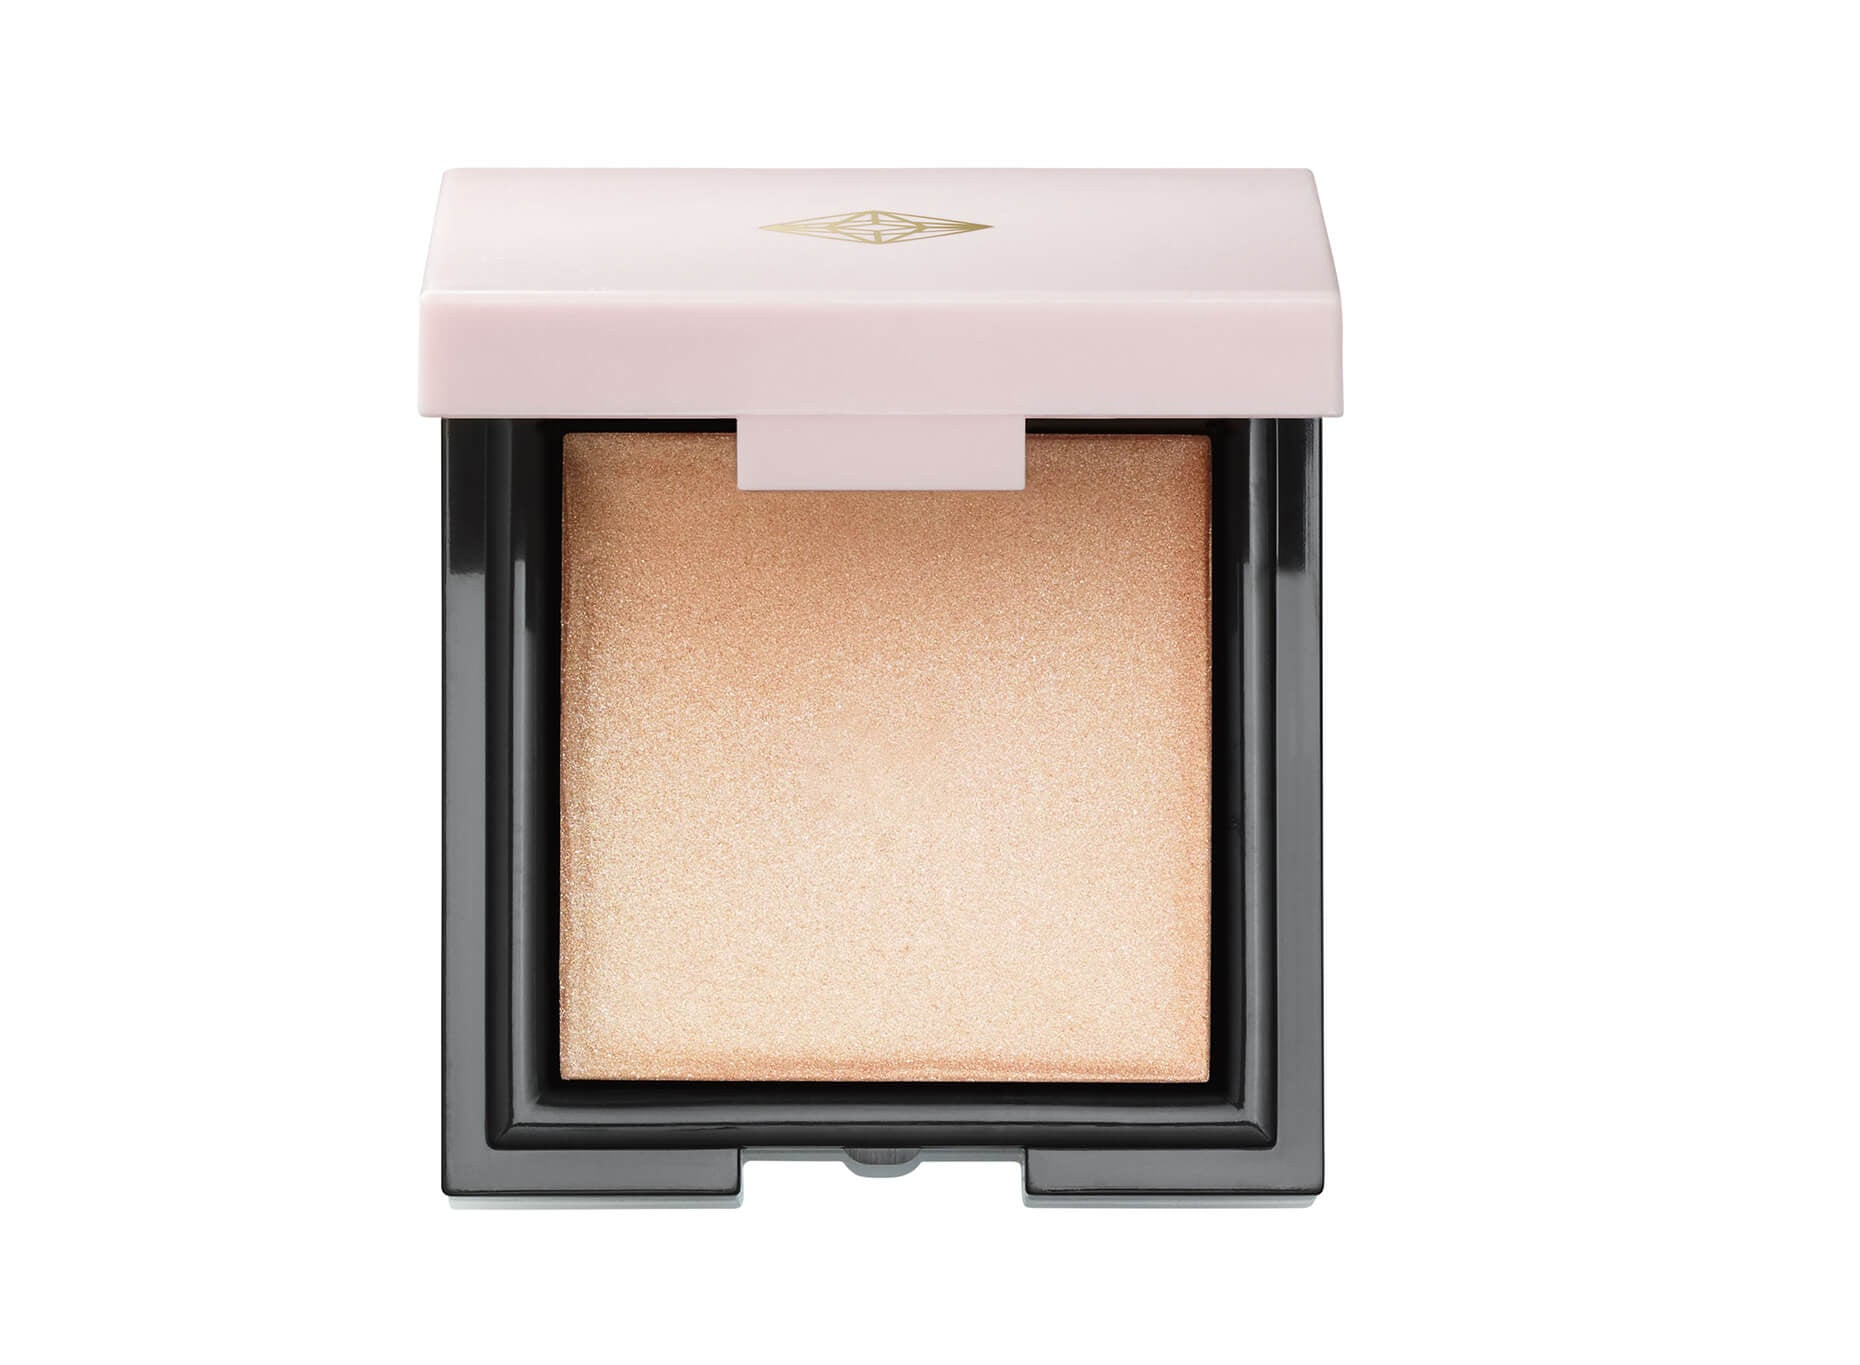 FLASH OF BRILLIANCE SKIN ILLUMINATOR